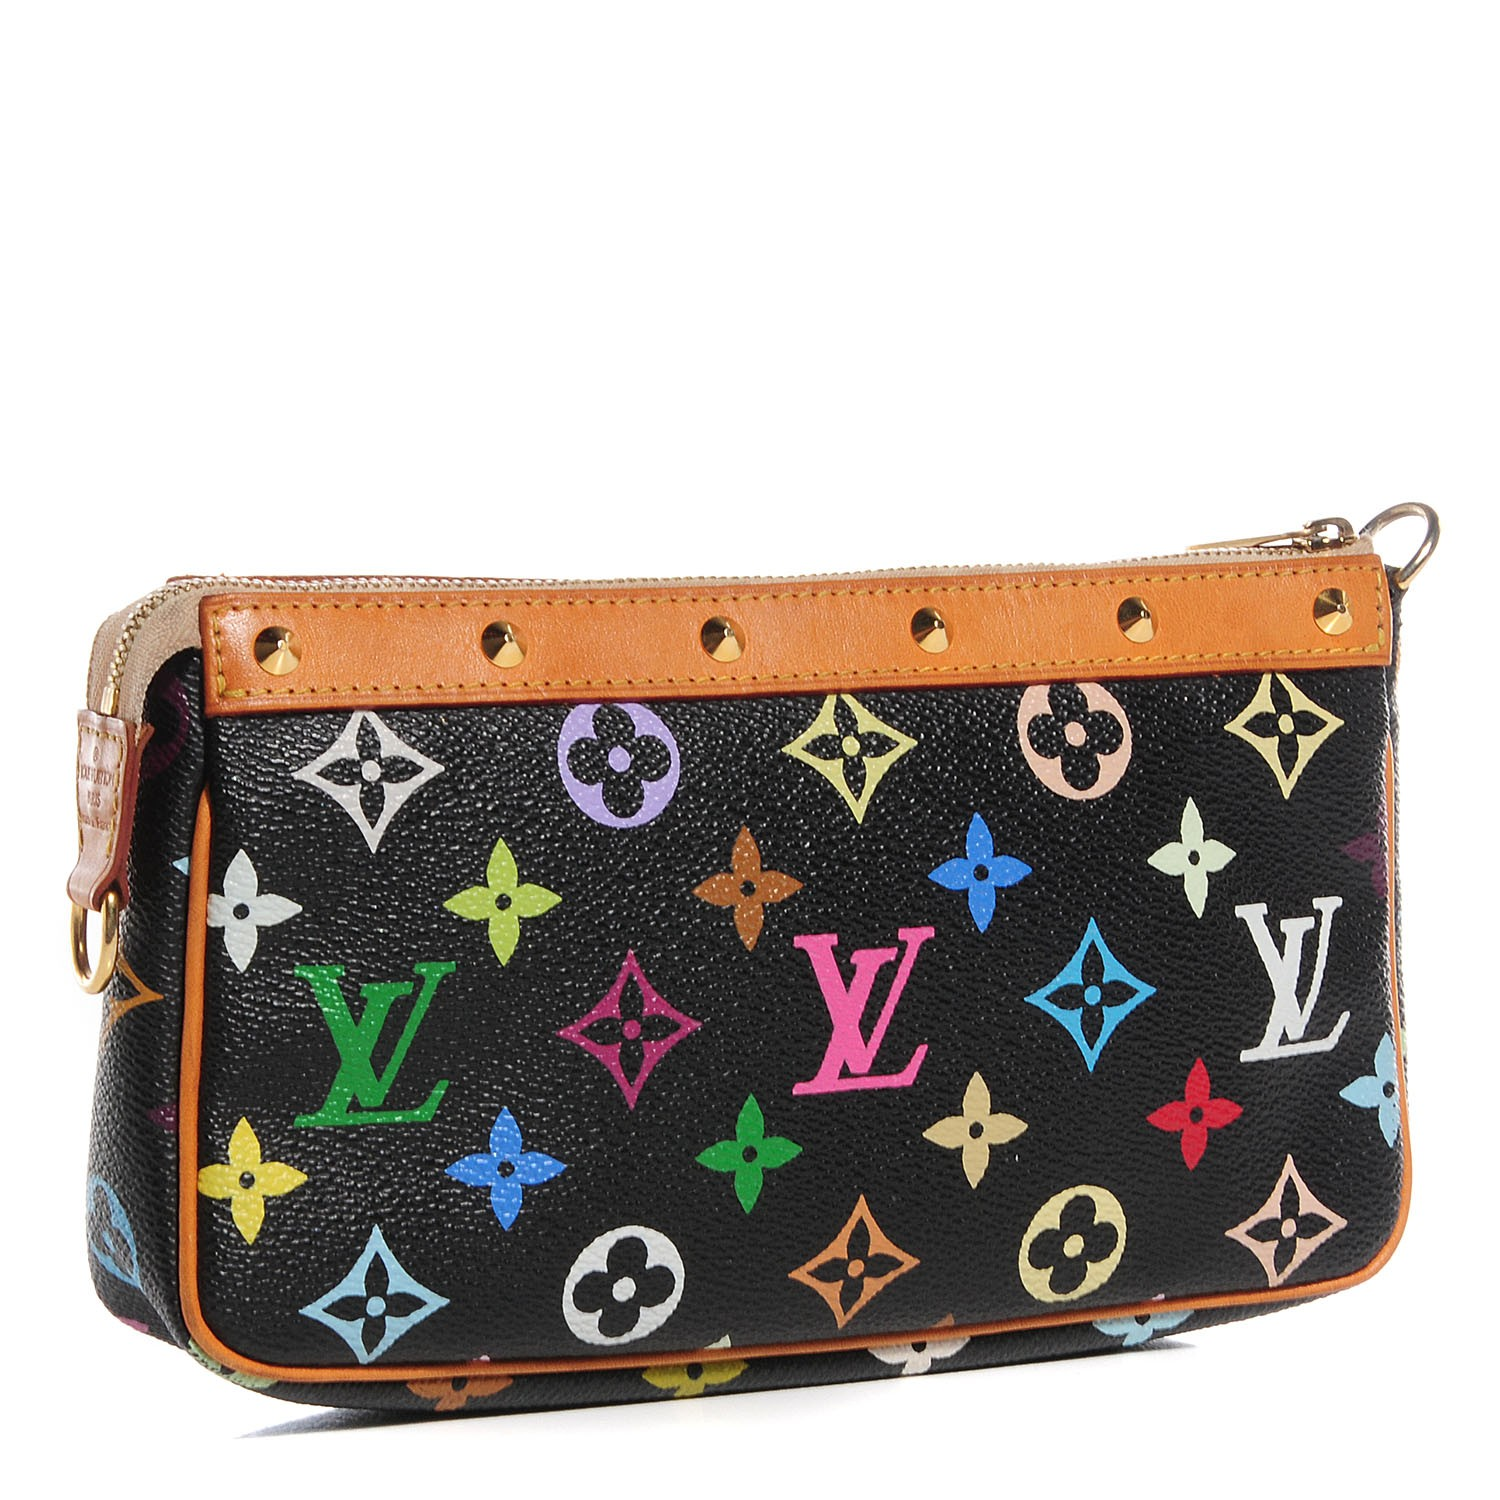 424c5bca09ef LOUIS VUITTON Multicolor Pochette Accessories Black 91452